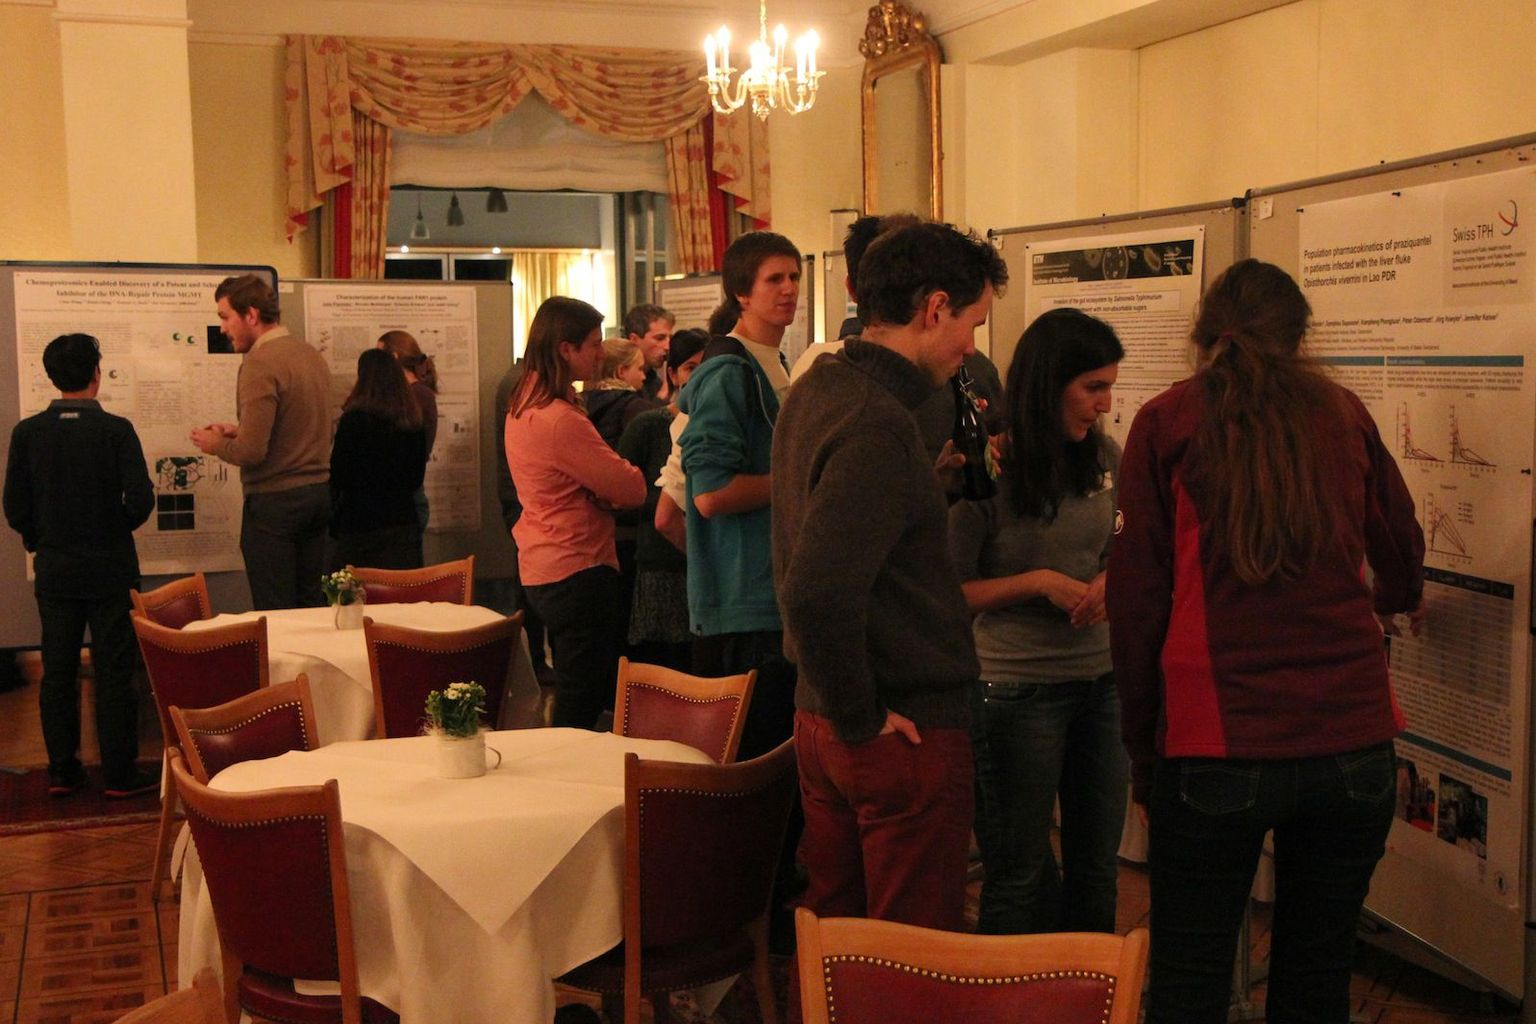 Rigi Workshop 2016 - Poster session